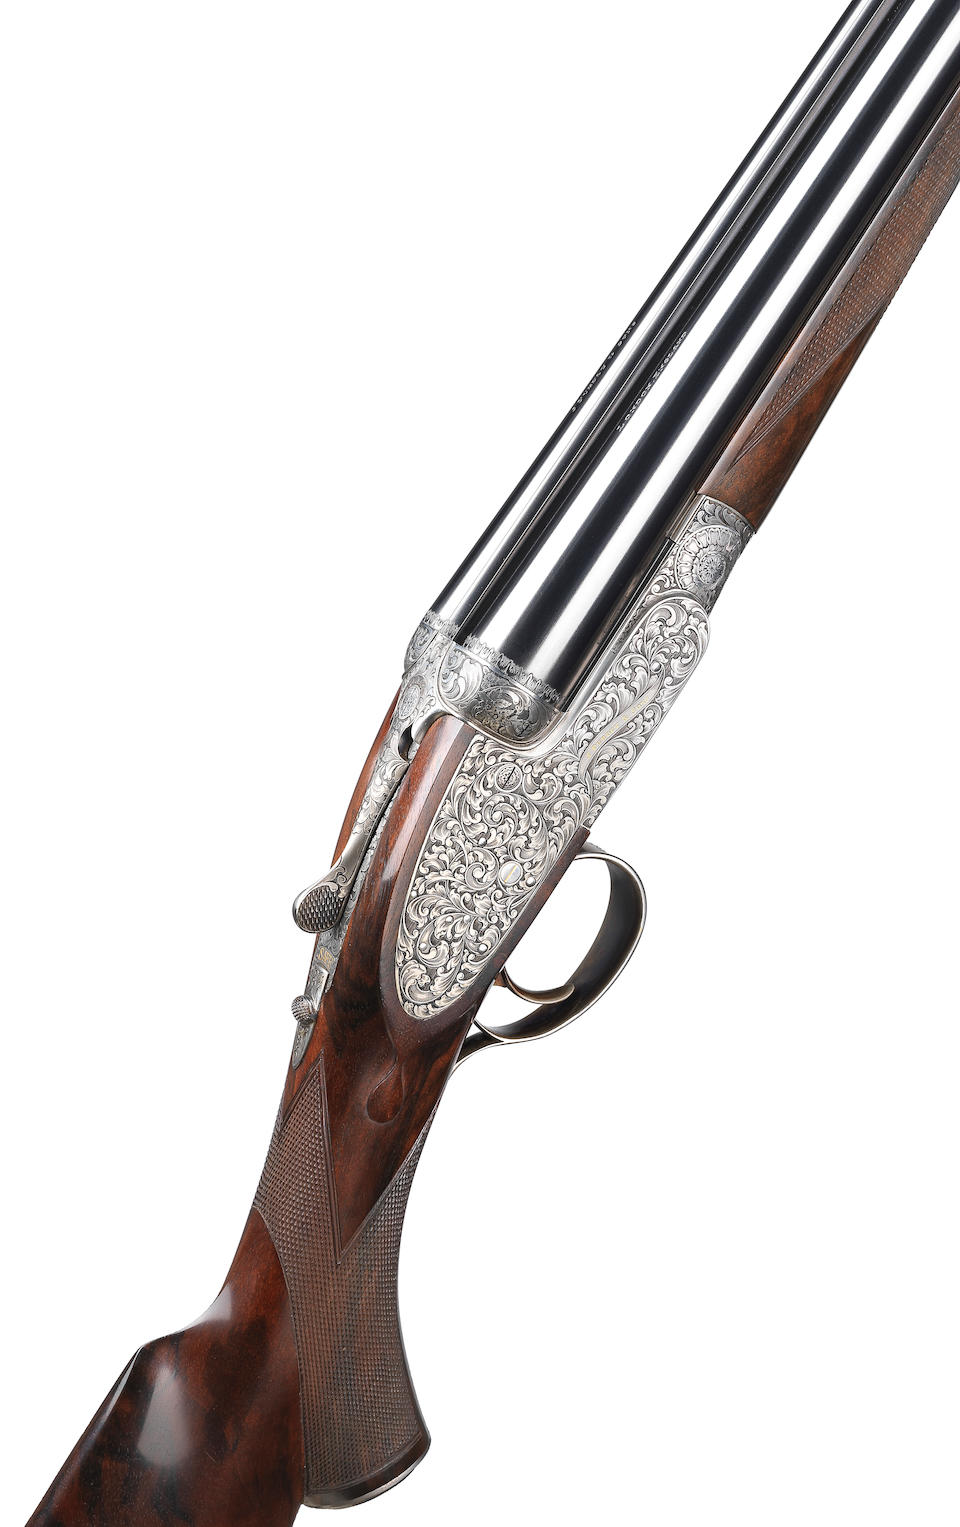 A fine Chung-engraved 12-bore (2¾in) single-trigger self-opening sidelock ejector gun by J. Purdey & Sons, no. 30145 In its brass-mounted oak and leather case with canvas cover and makers accessories